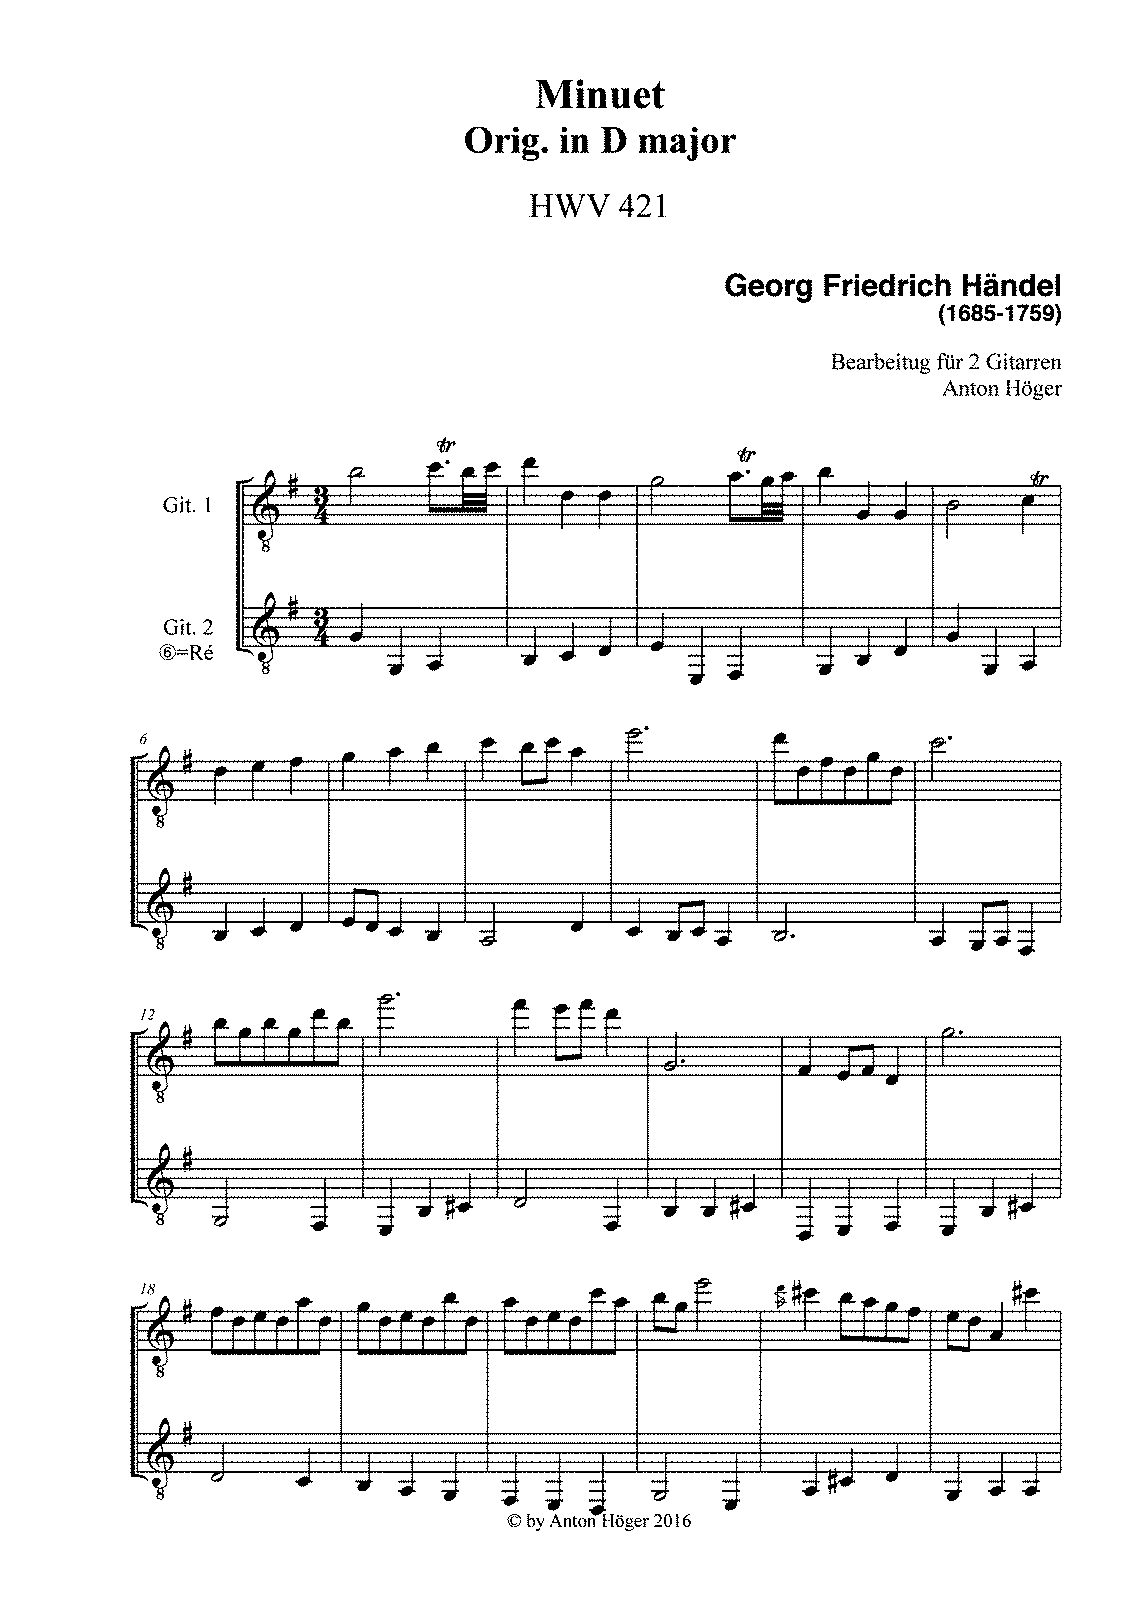 PMLP678965-Händel, Georg Friedrich - Minuet in D major, HWV 421-2Git.pdf